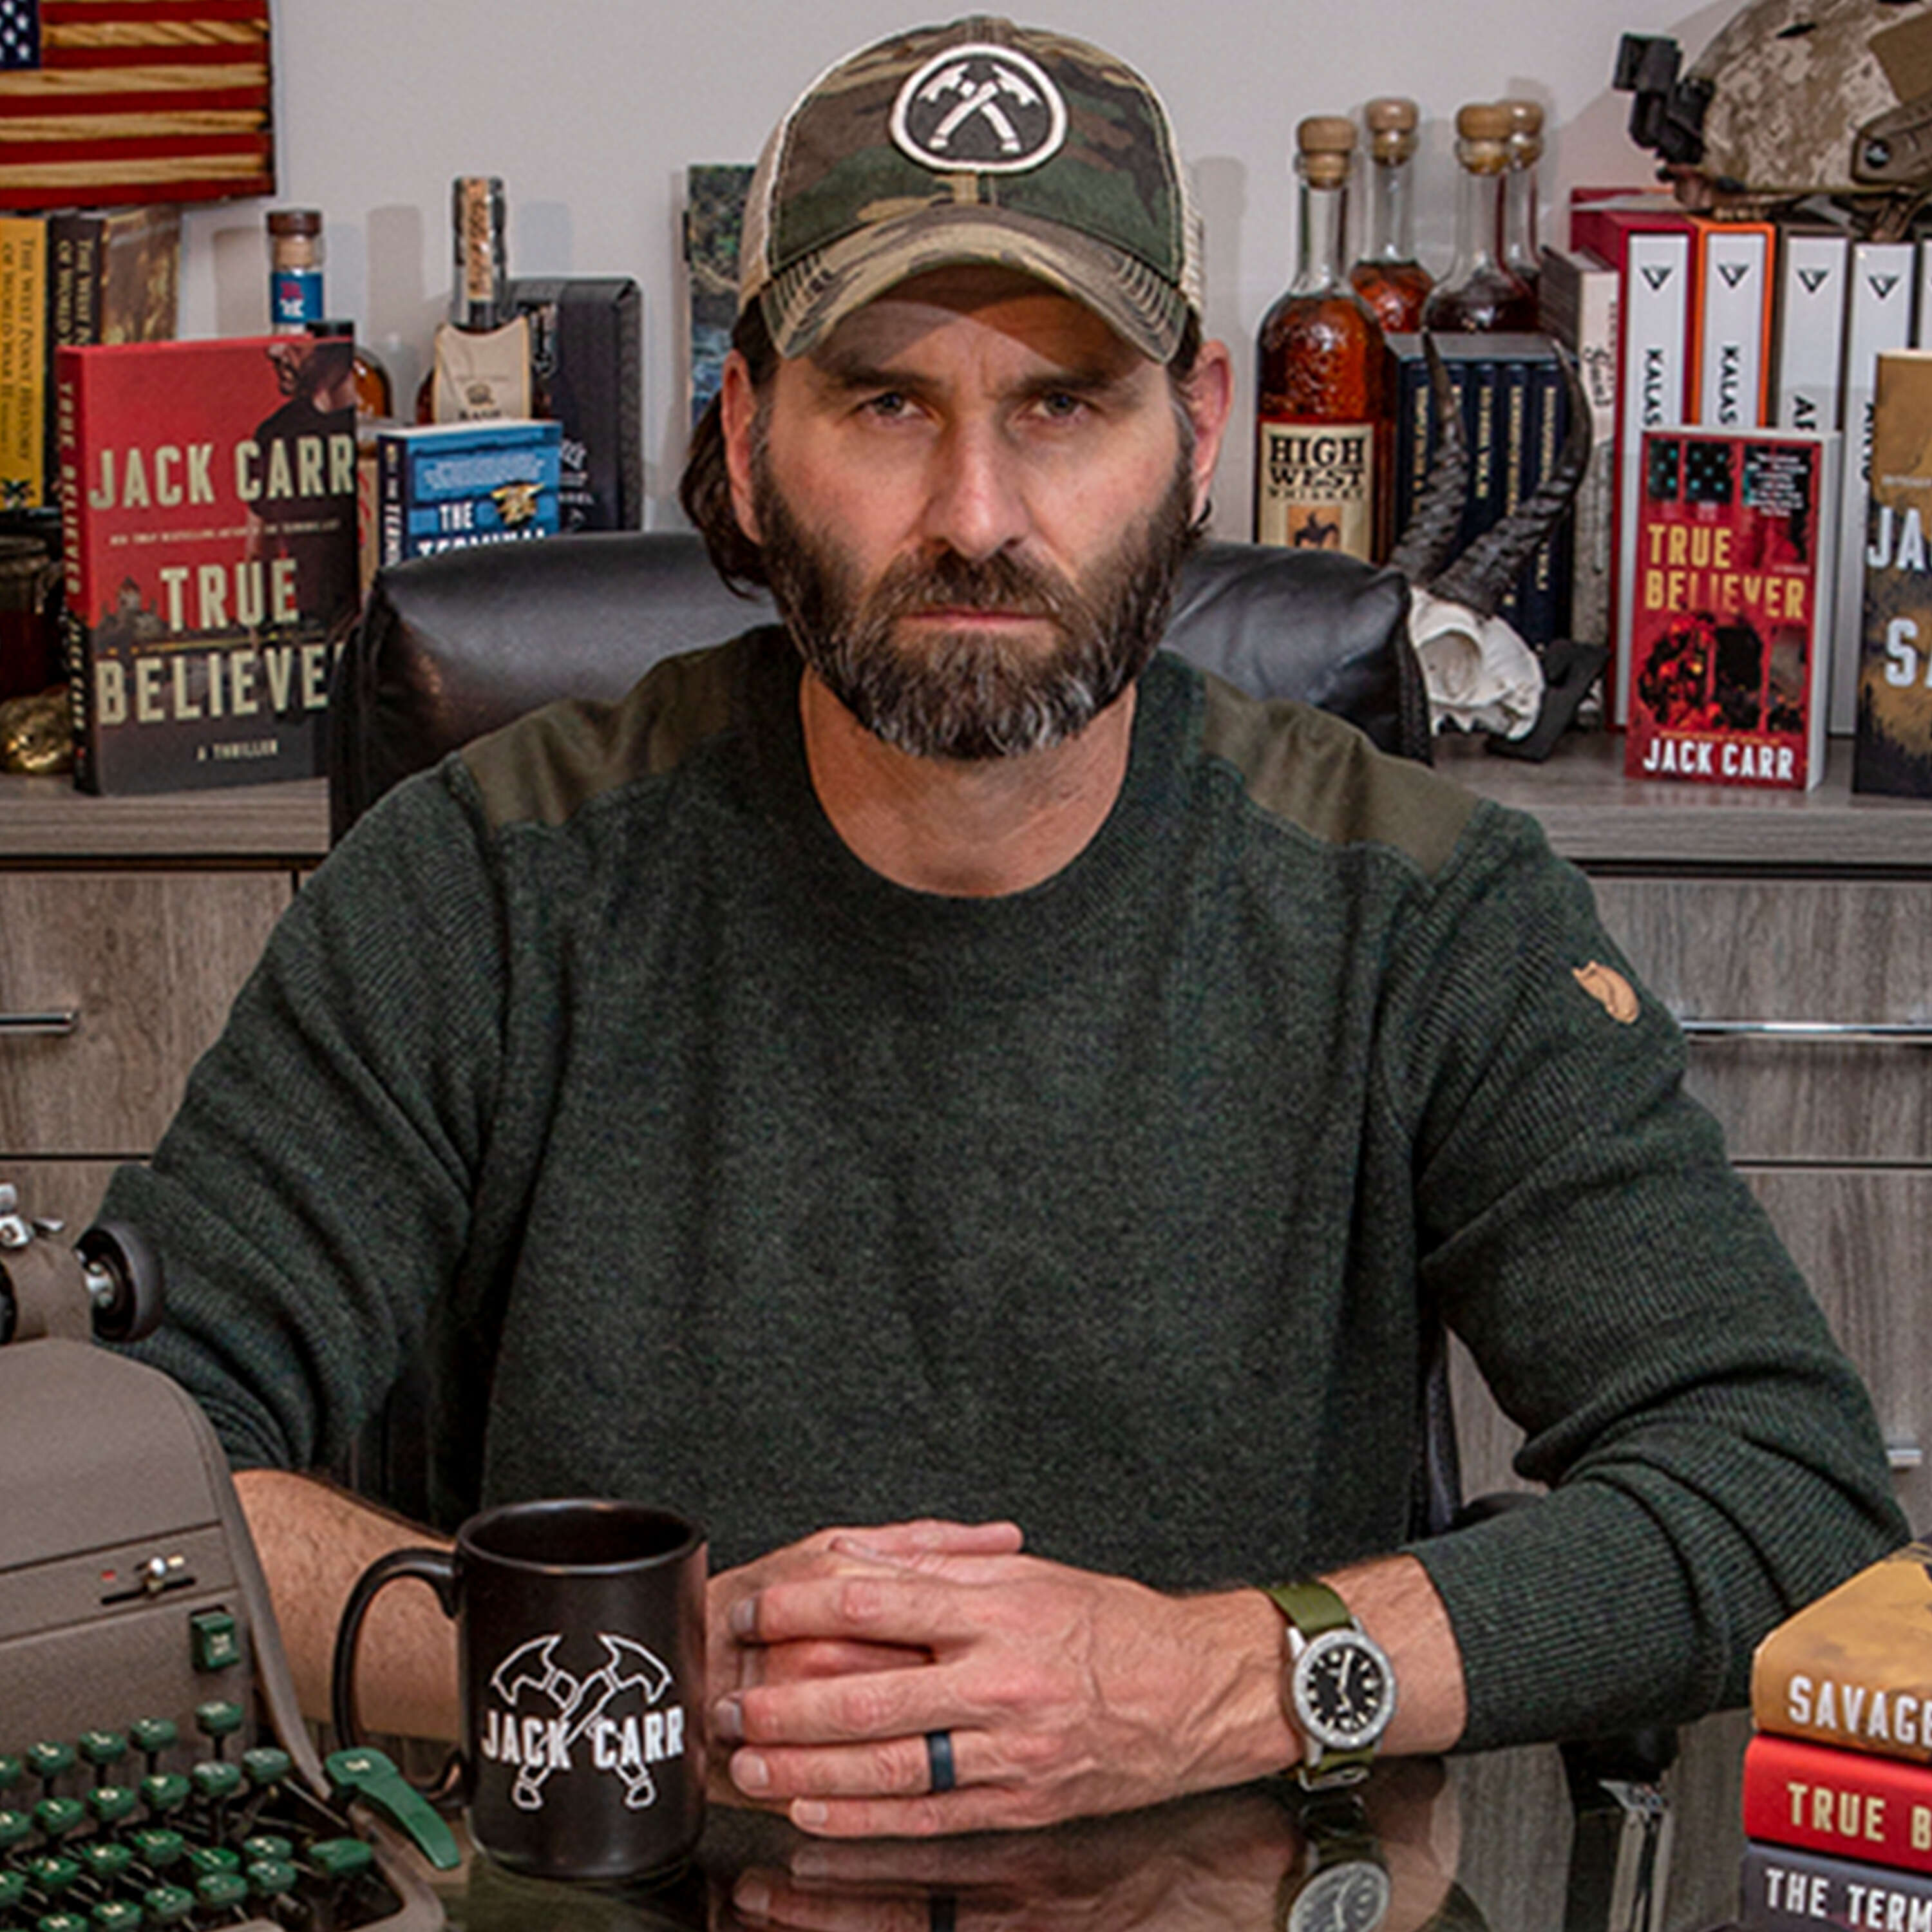 #225: Jack Carr, Navy Veteran, Former SEAL / Sniper, New York Times Bestselling Author